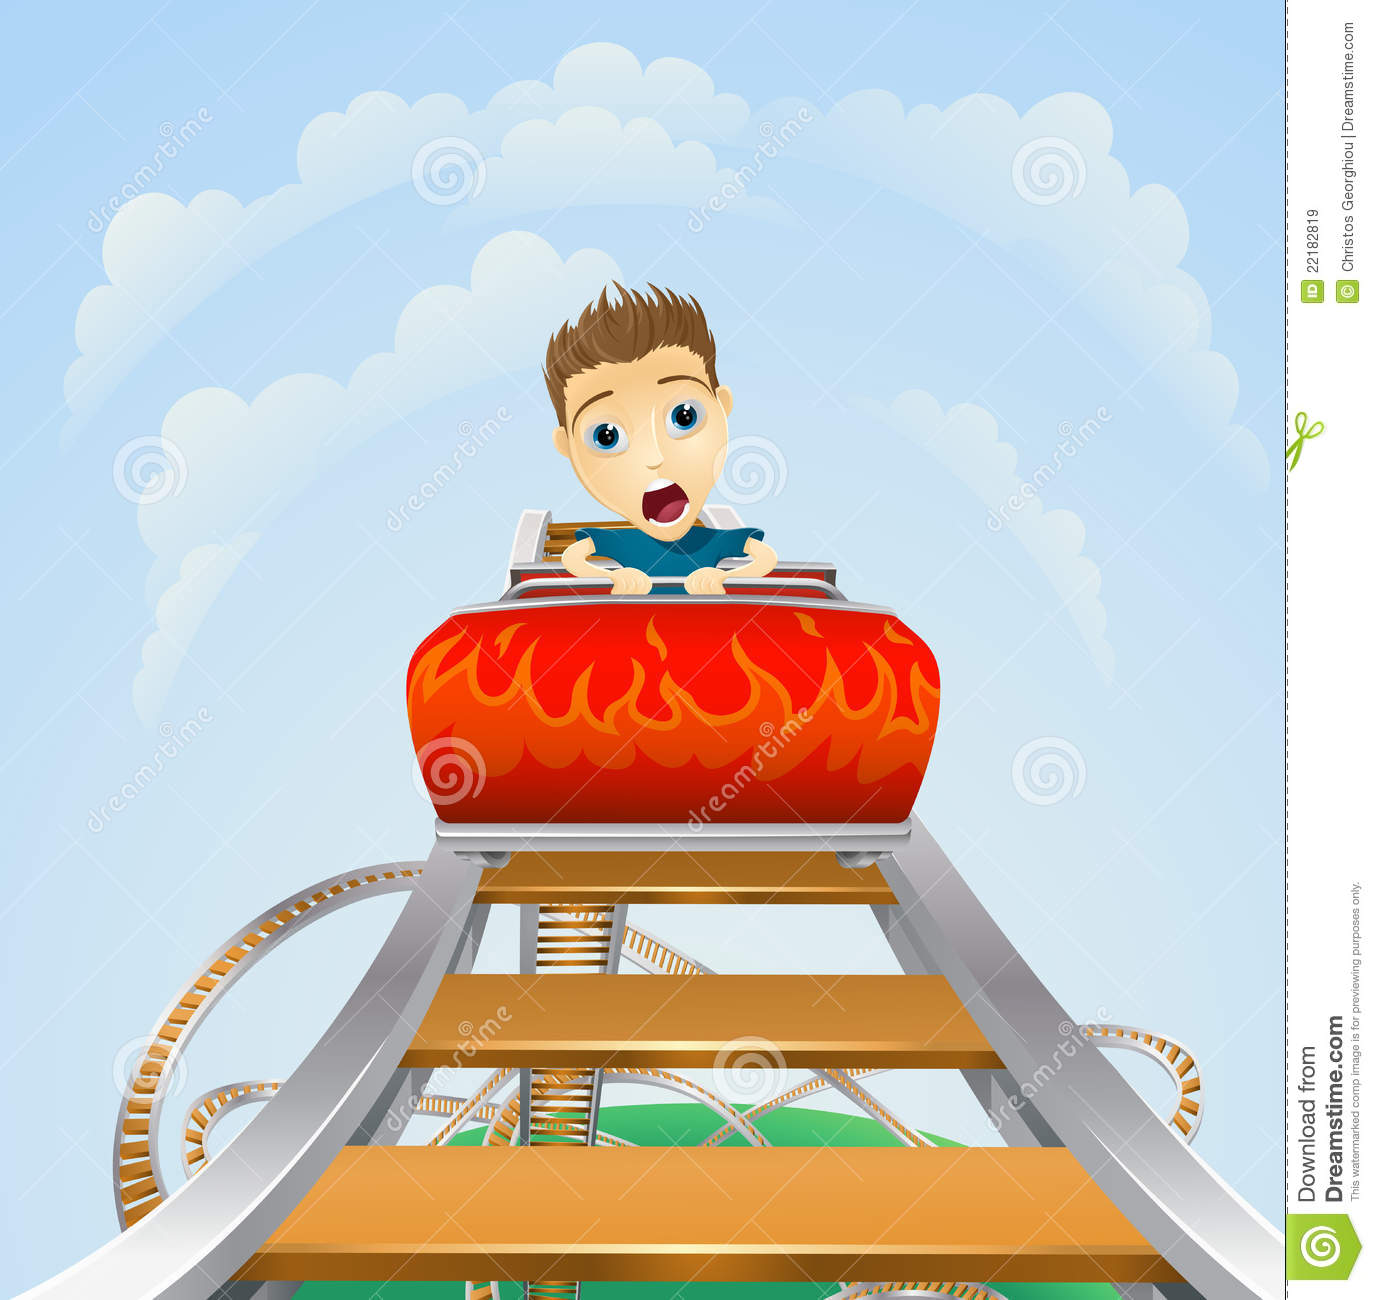 Scary Ride On Rollercoaster Royalty Free Stock Images